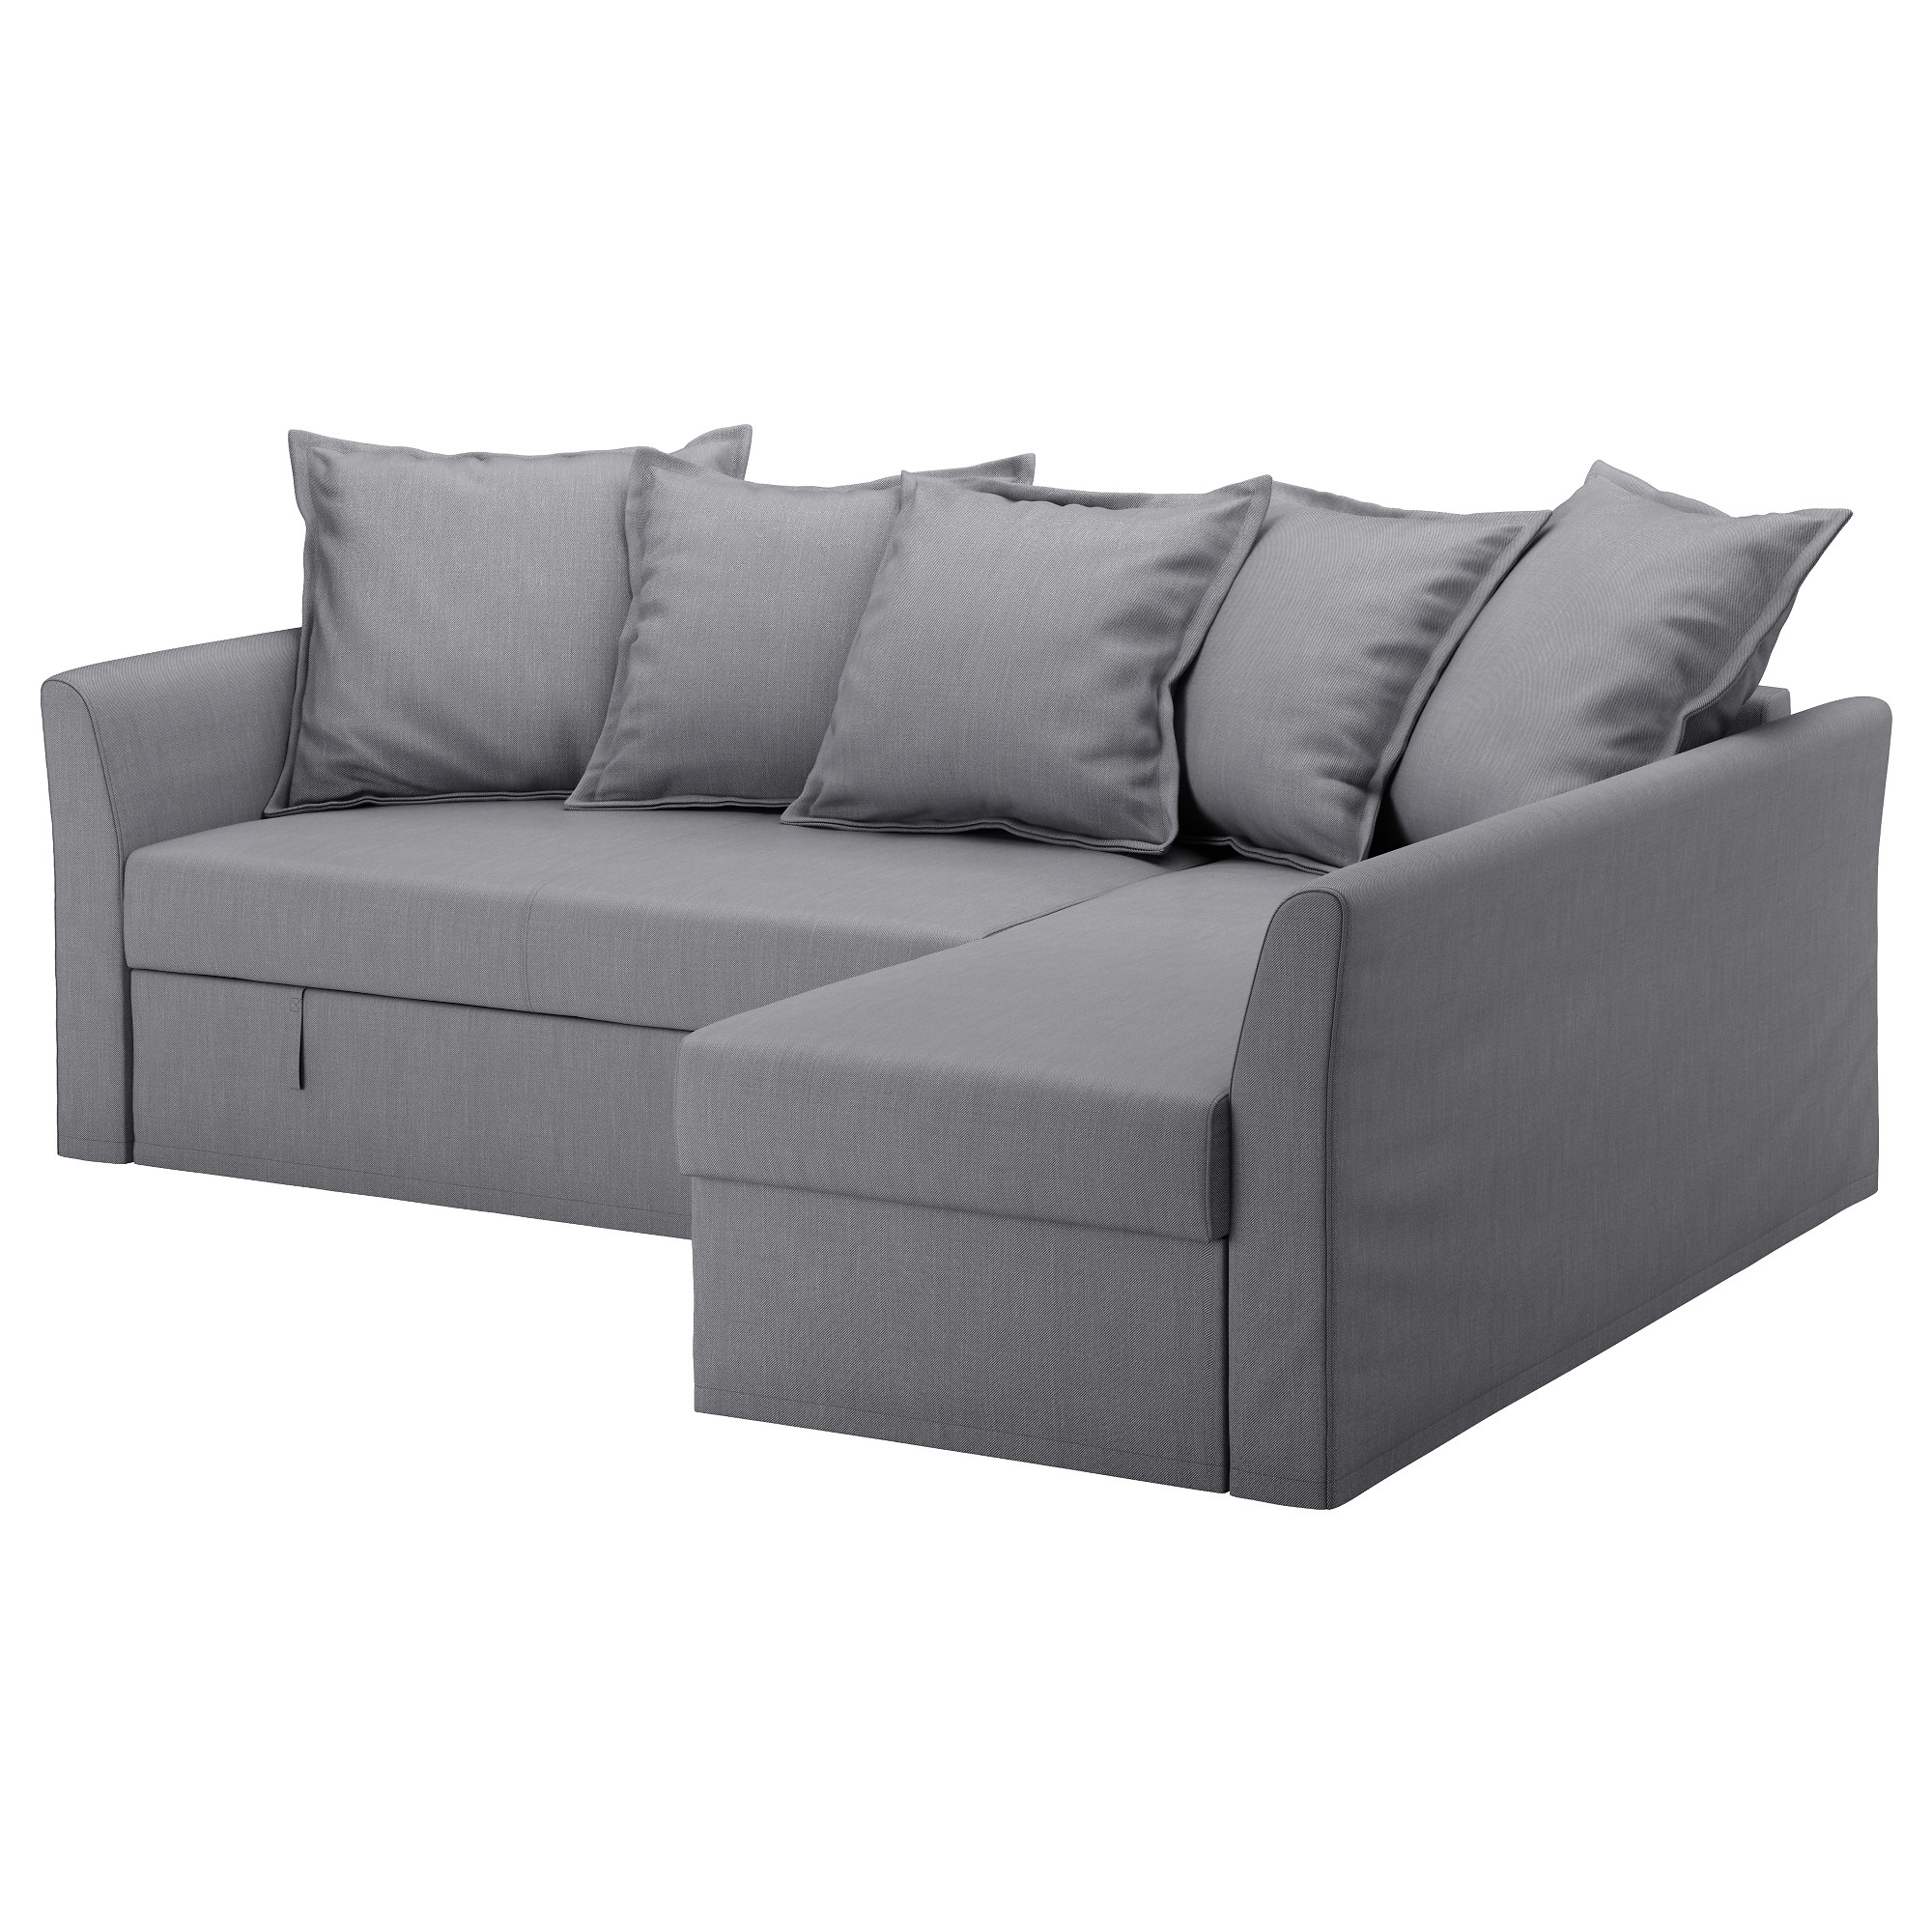 Holmsund Corner Sofa Bed – Nordvalla Beige – Ikea With Regard To Ikea Corner Sofas With Storage (View 10 of 10)